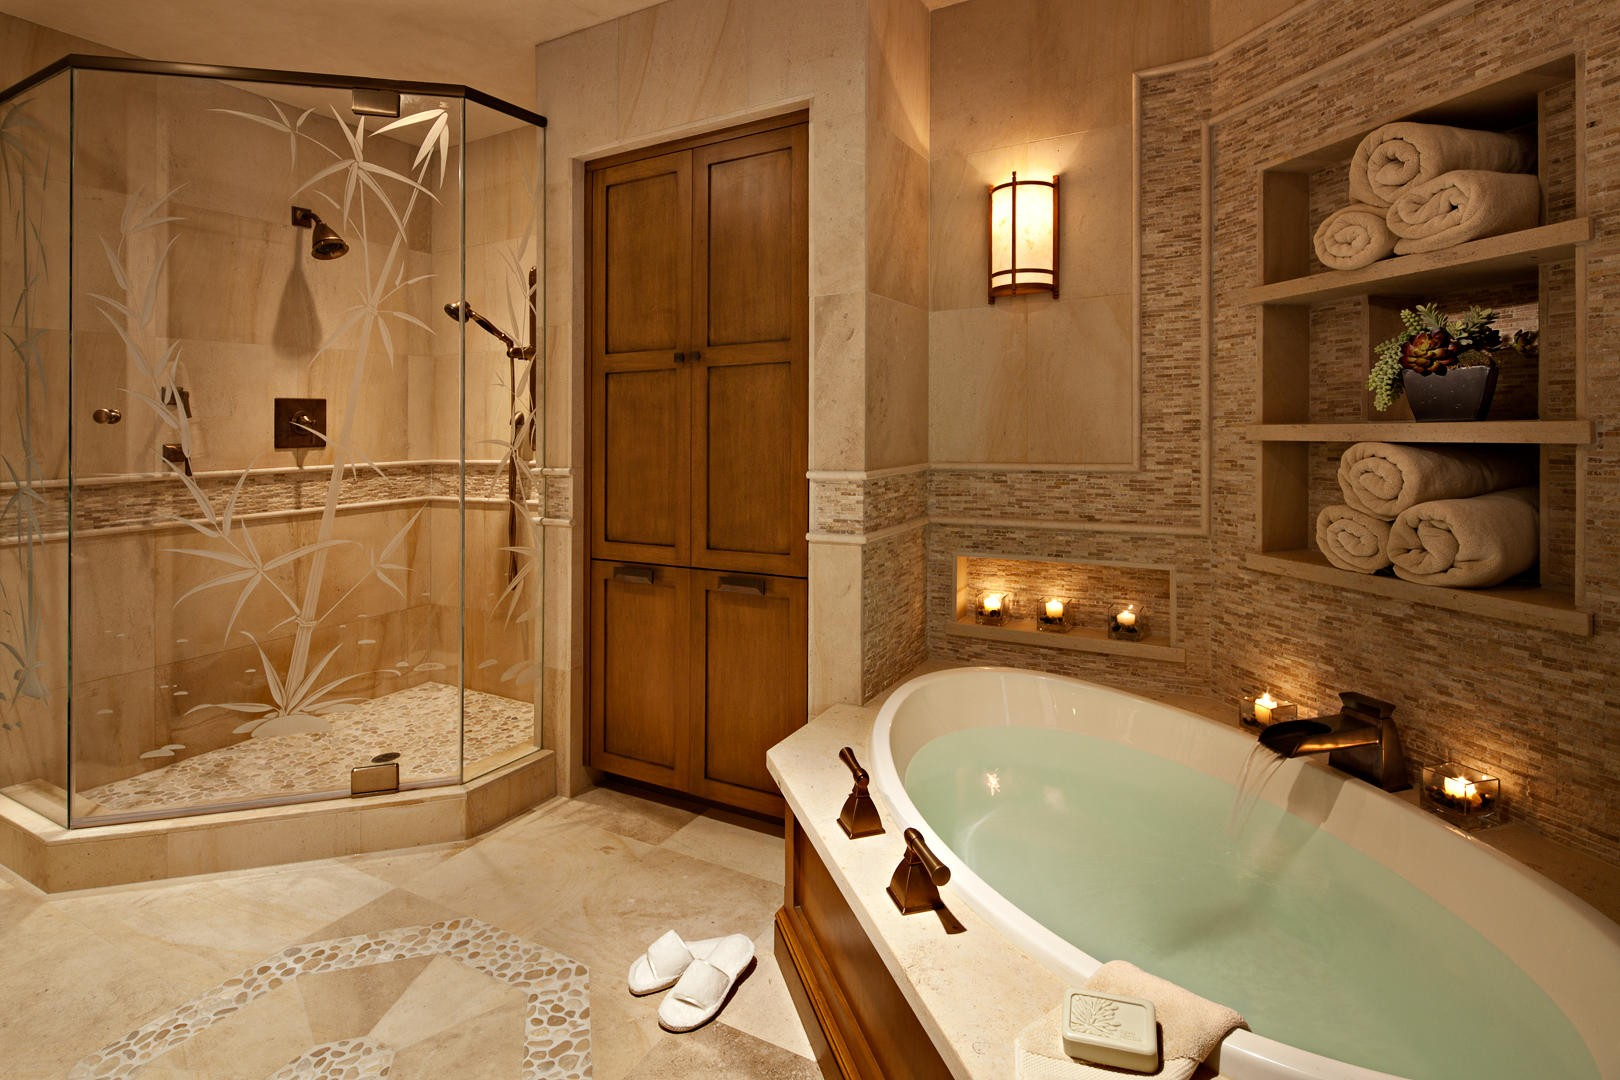 spa bathroom ideas pictures photo - 1